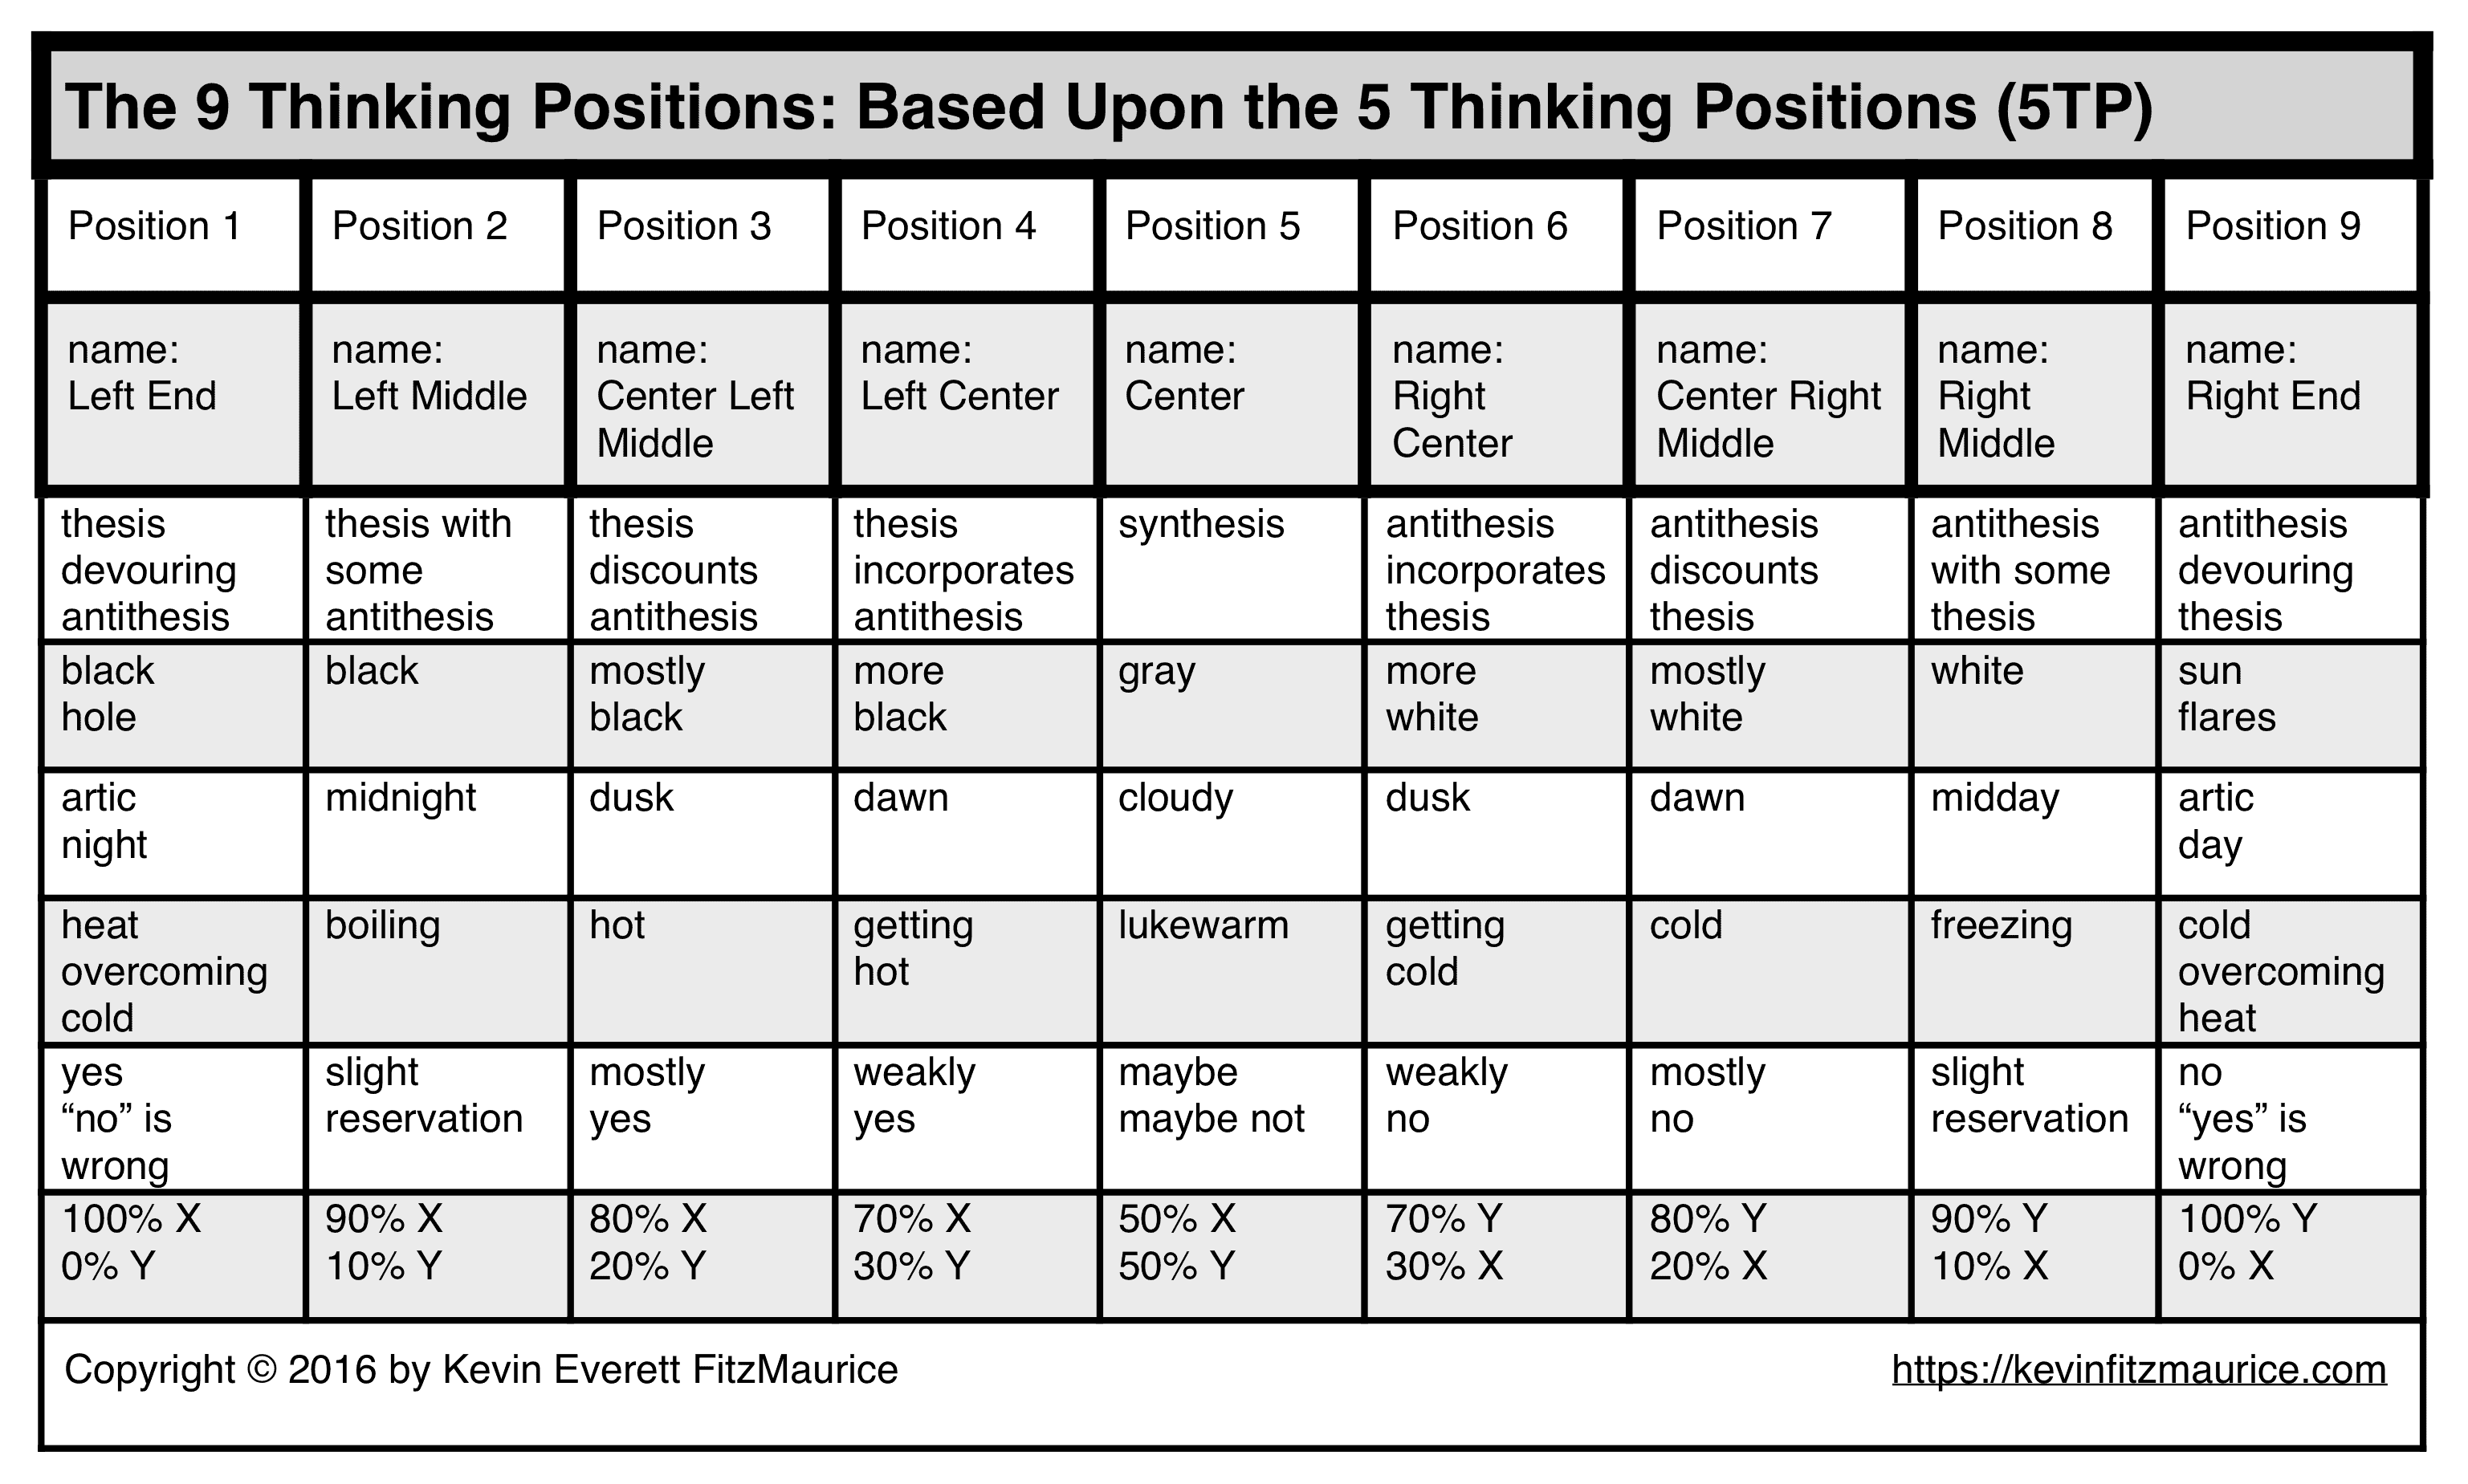 9 Thinking Positions based on 5TP